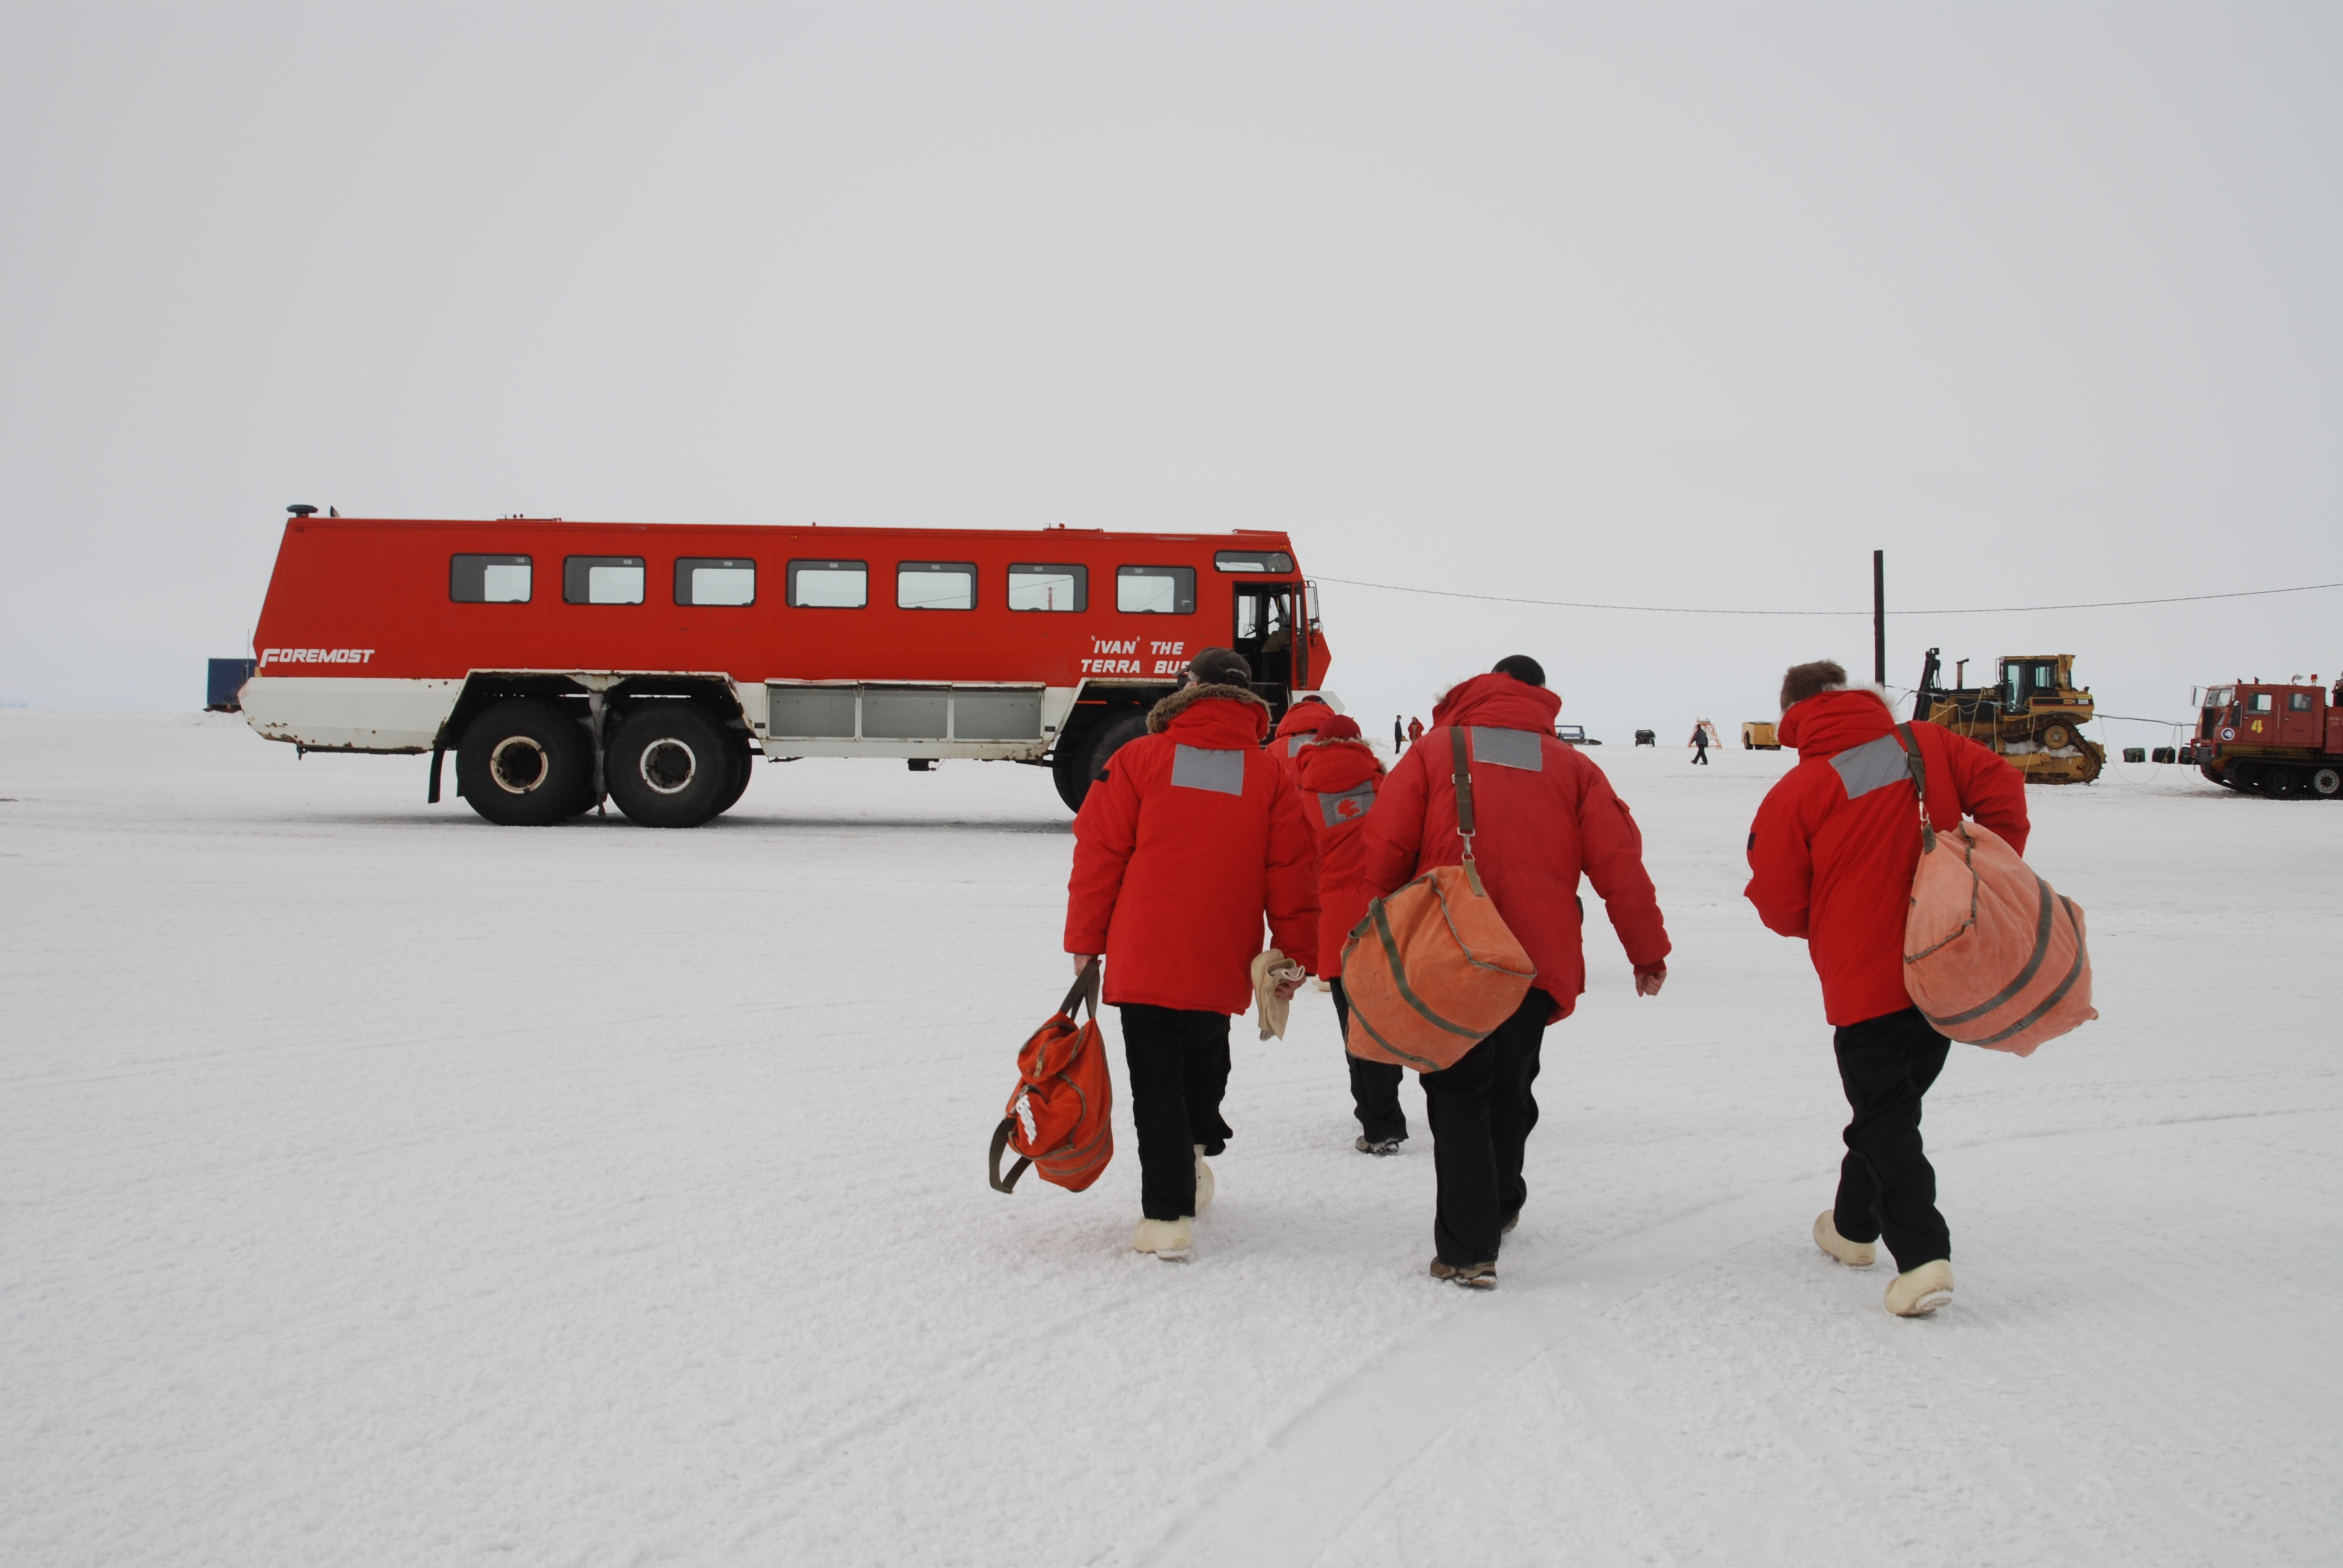 After departing the C-17 aircraft, the researchers make their way to Ivan the Terra Bus for a 30 minute shuttle ride to McMurdo Station on the Ross Sea on the southern most continent.  Photo by Kirk Beckendorf